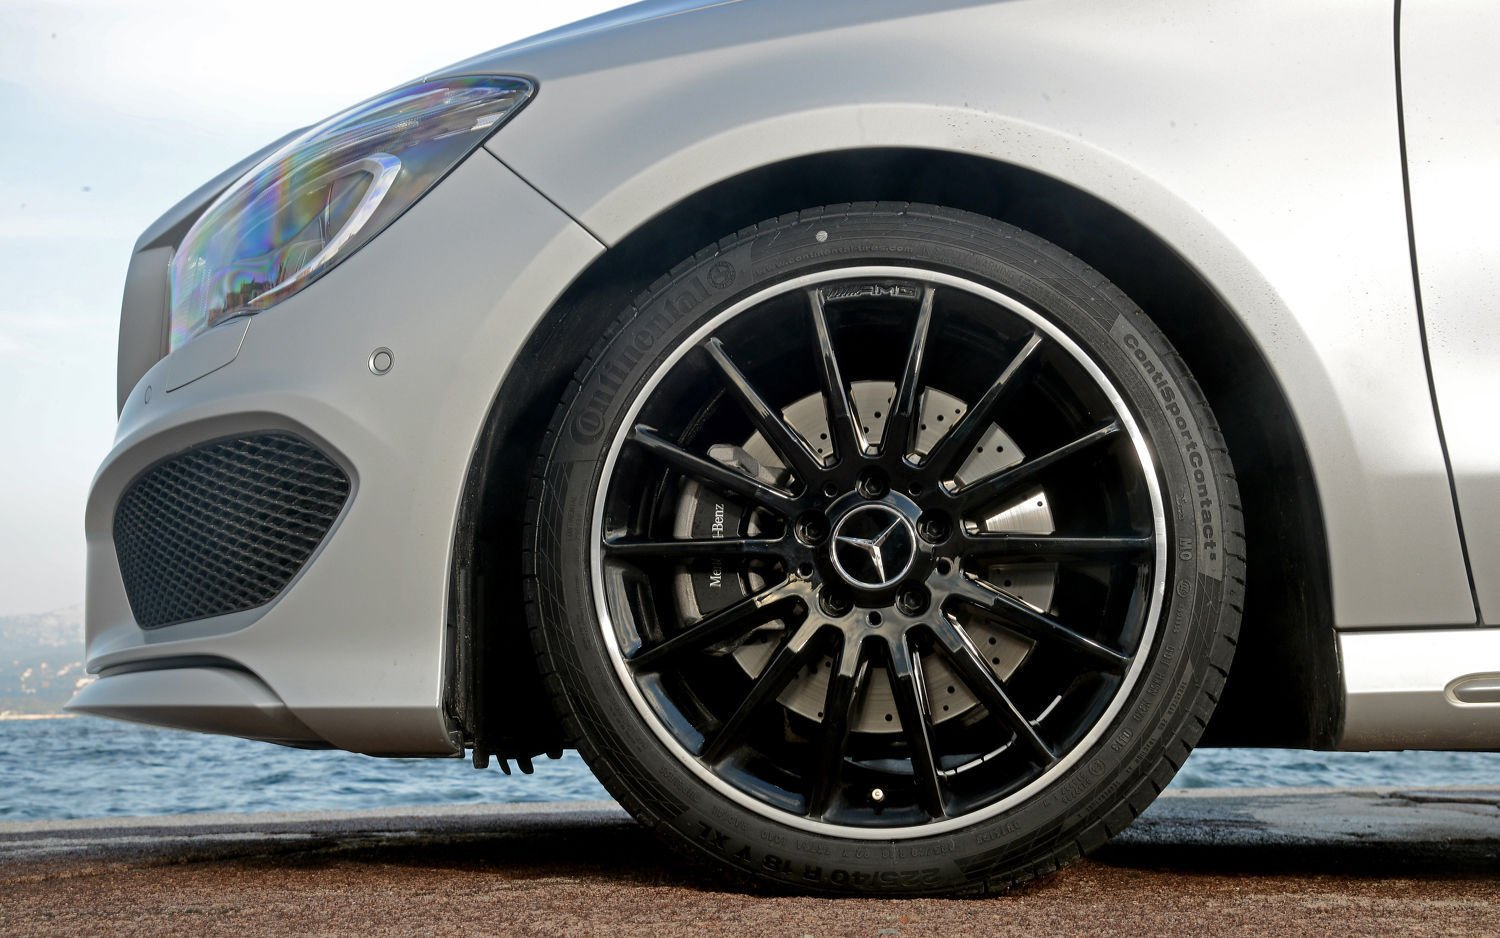 4 x Exclusive Limited Edition compatibile con AMG Midnight Black Mercedes centro ruota tappi 75 mm a B C D S SLK A45 AMG